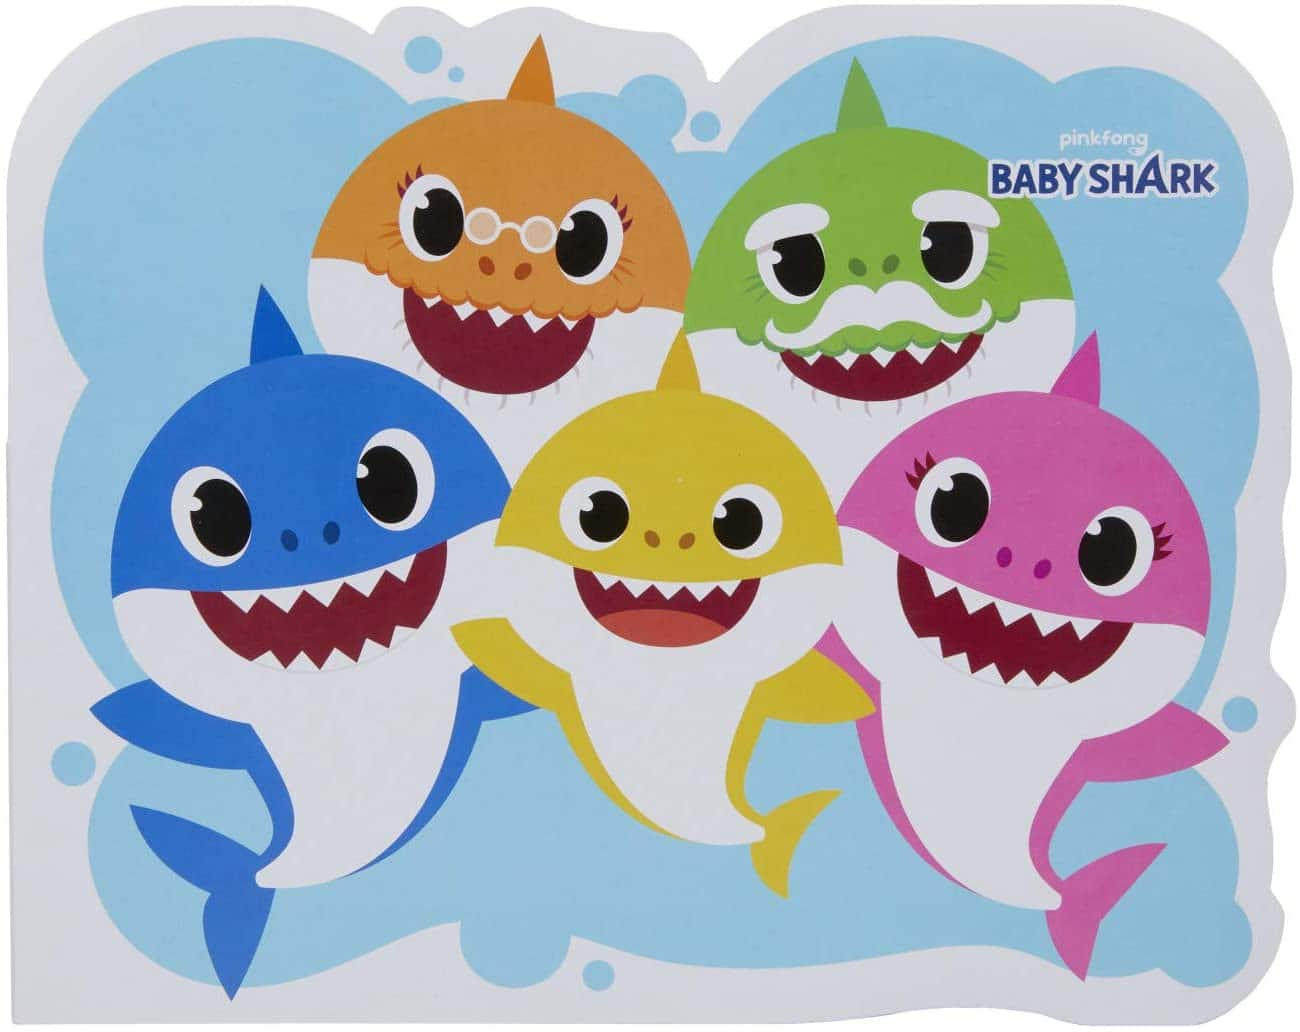 Amazon Offer 90-Pieces Crayola Baby Shark Art Set 04-1042 for $16.99